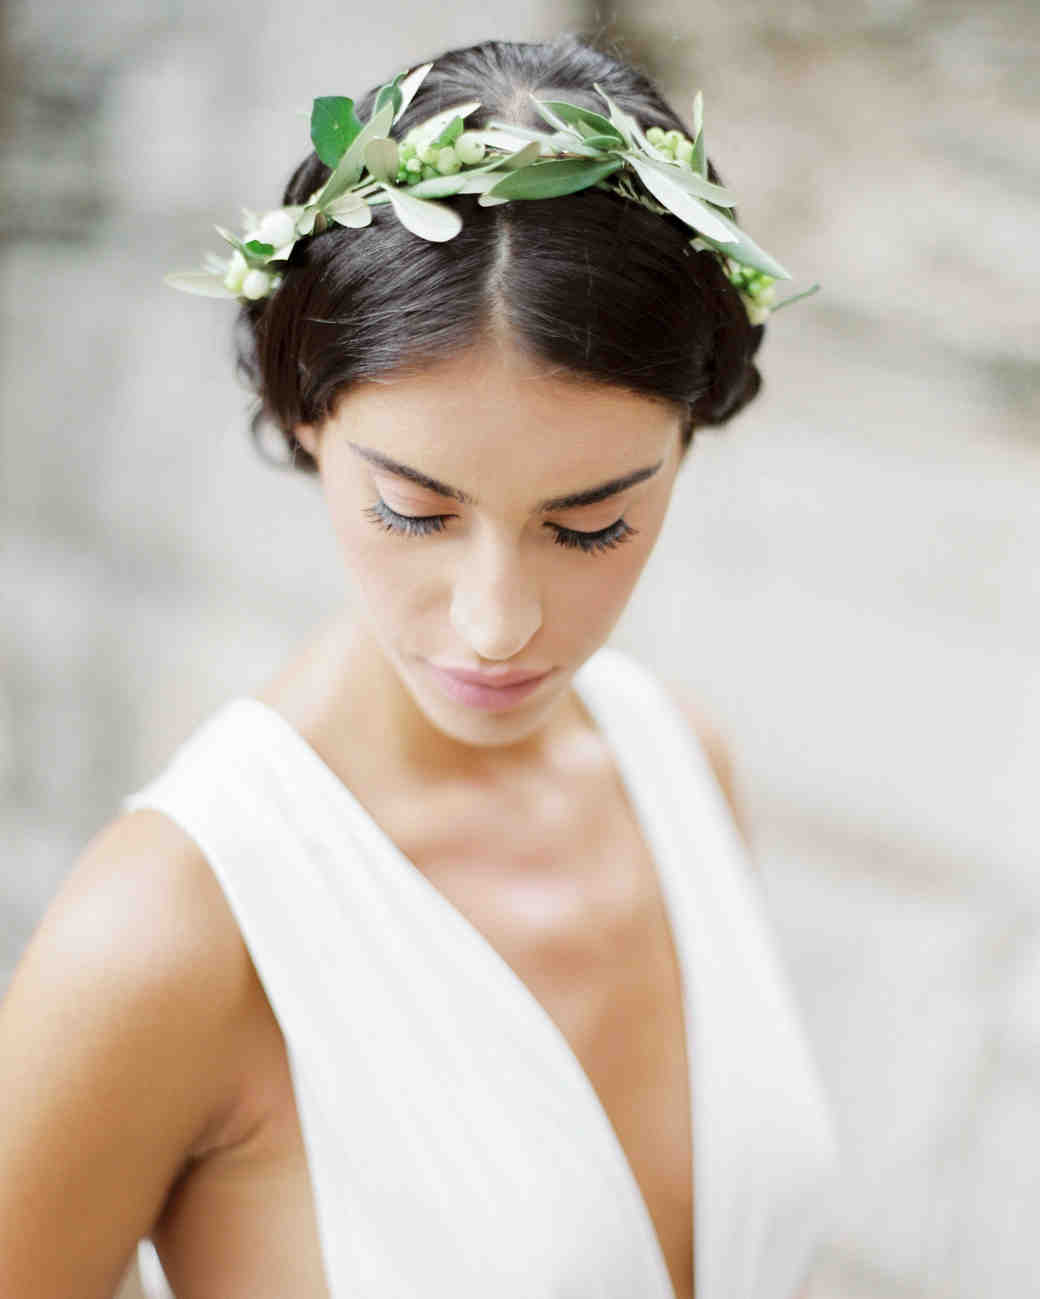 The New Flower Crown: Greenery Crowns | Martha Stewart Weddings